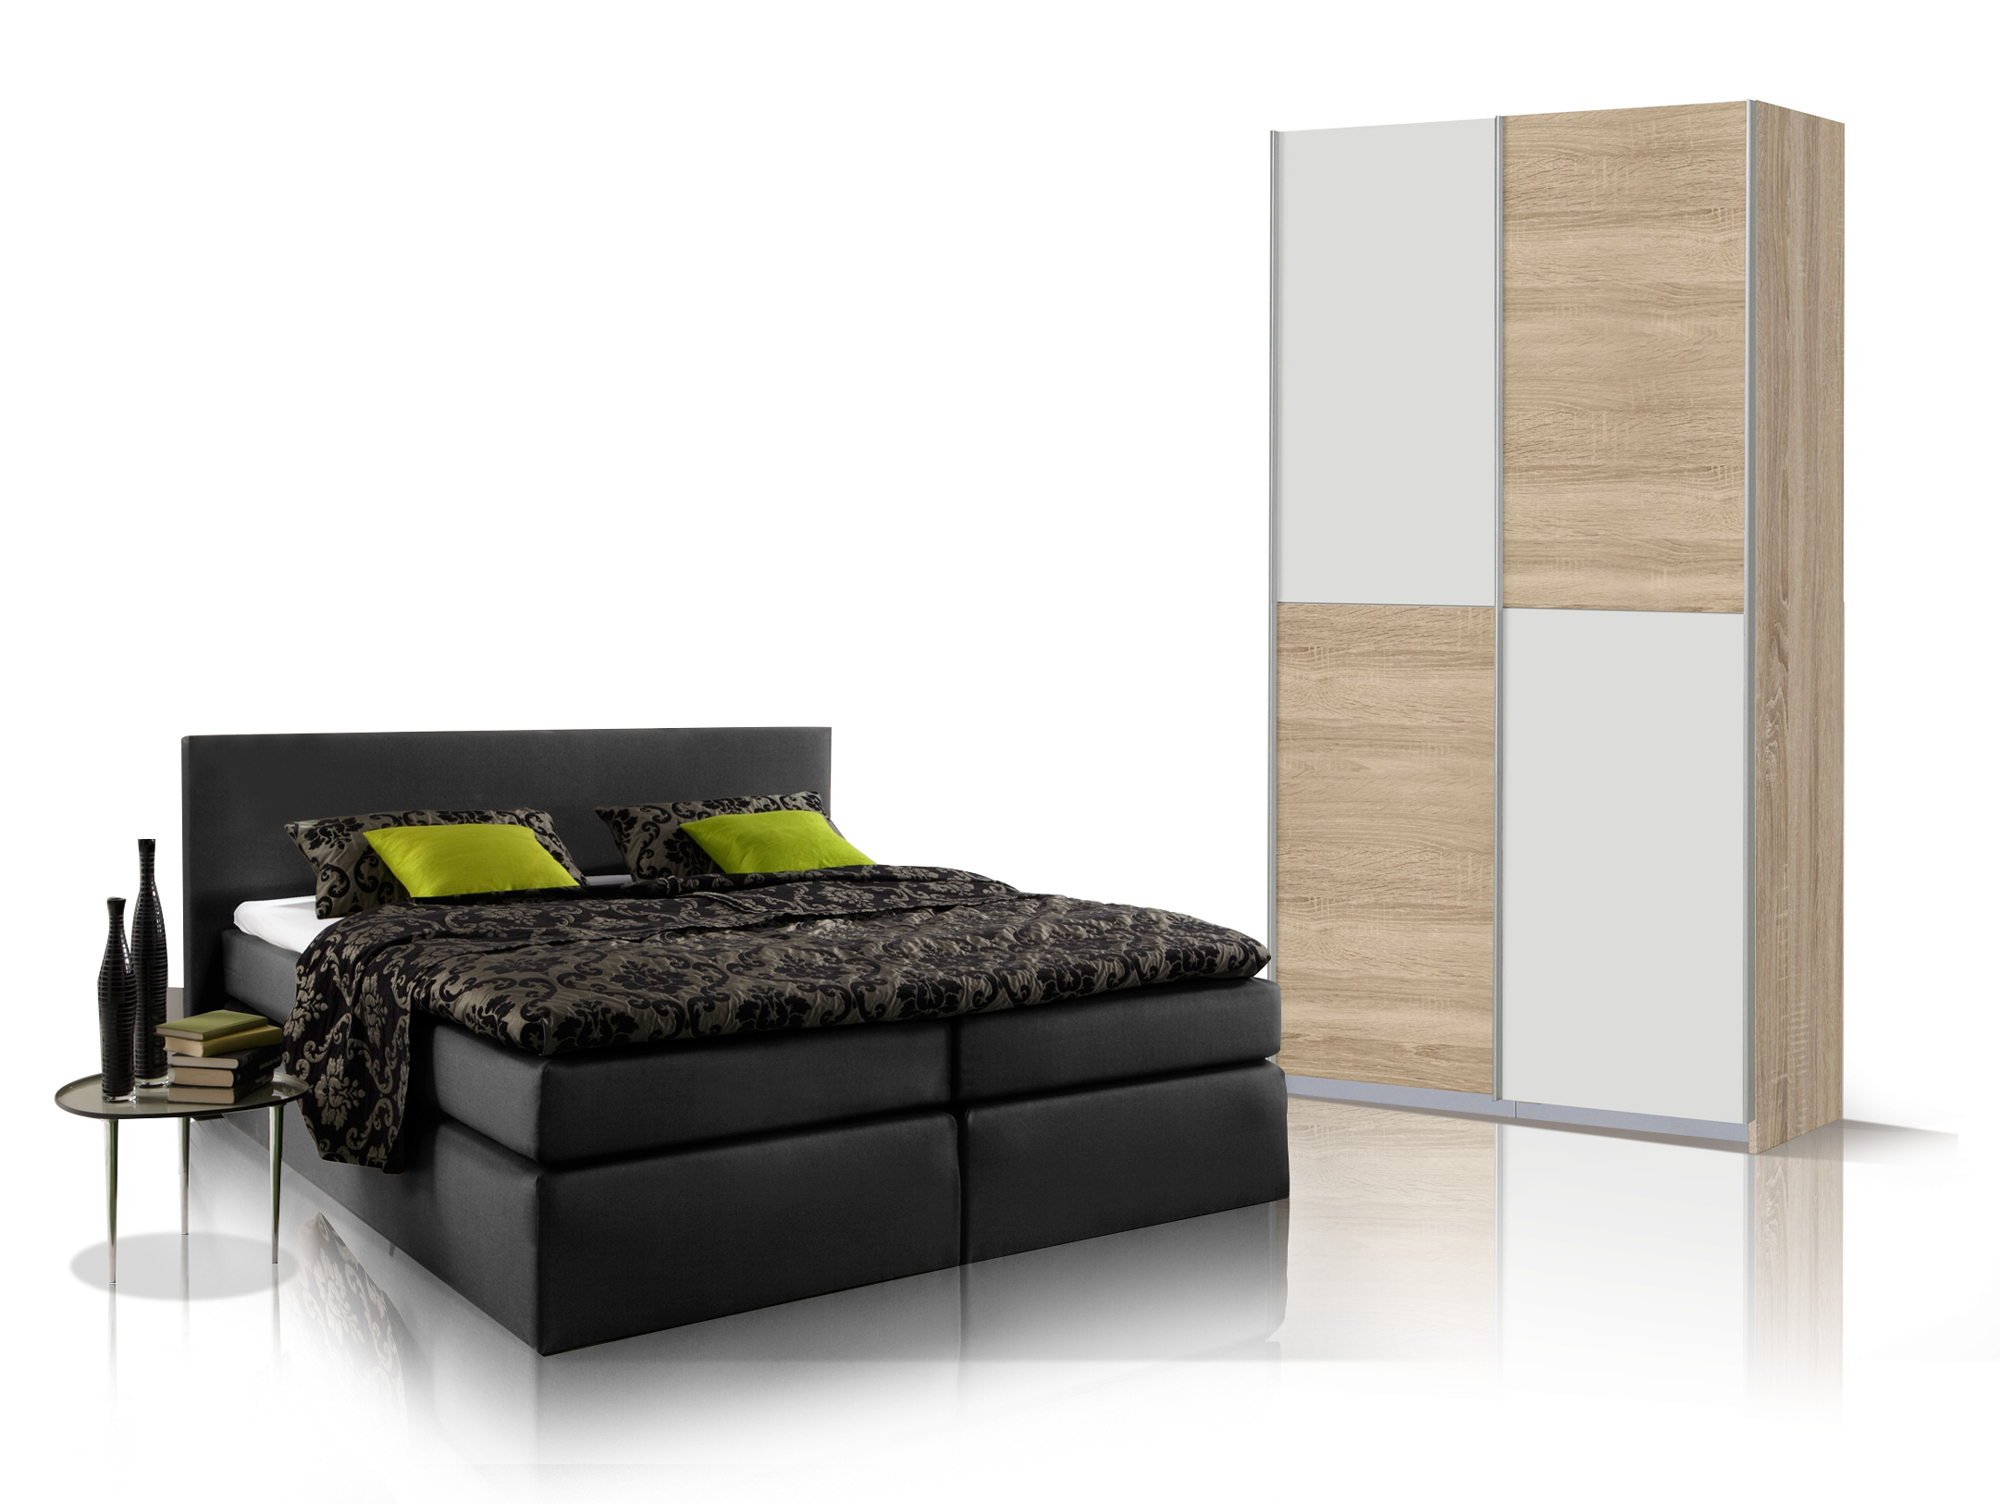 oreno schlafzimmerset schrank und boxspringbett schwarz 140x200 cm eiche sonoma weiss. Black Bedroom Furniture Sets. Home Design Ideas